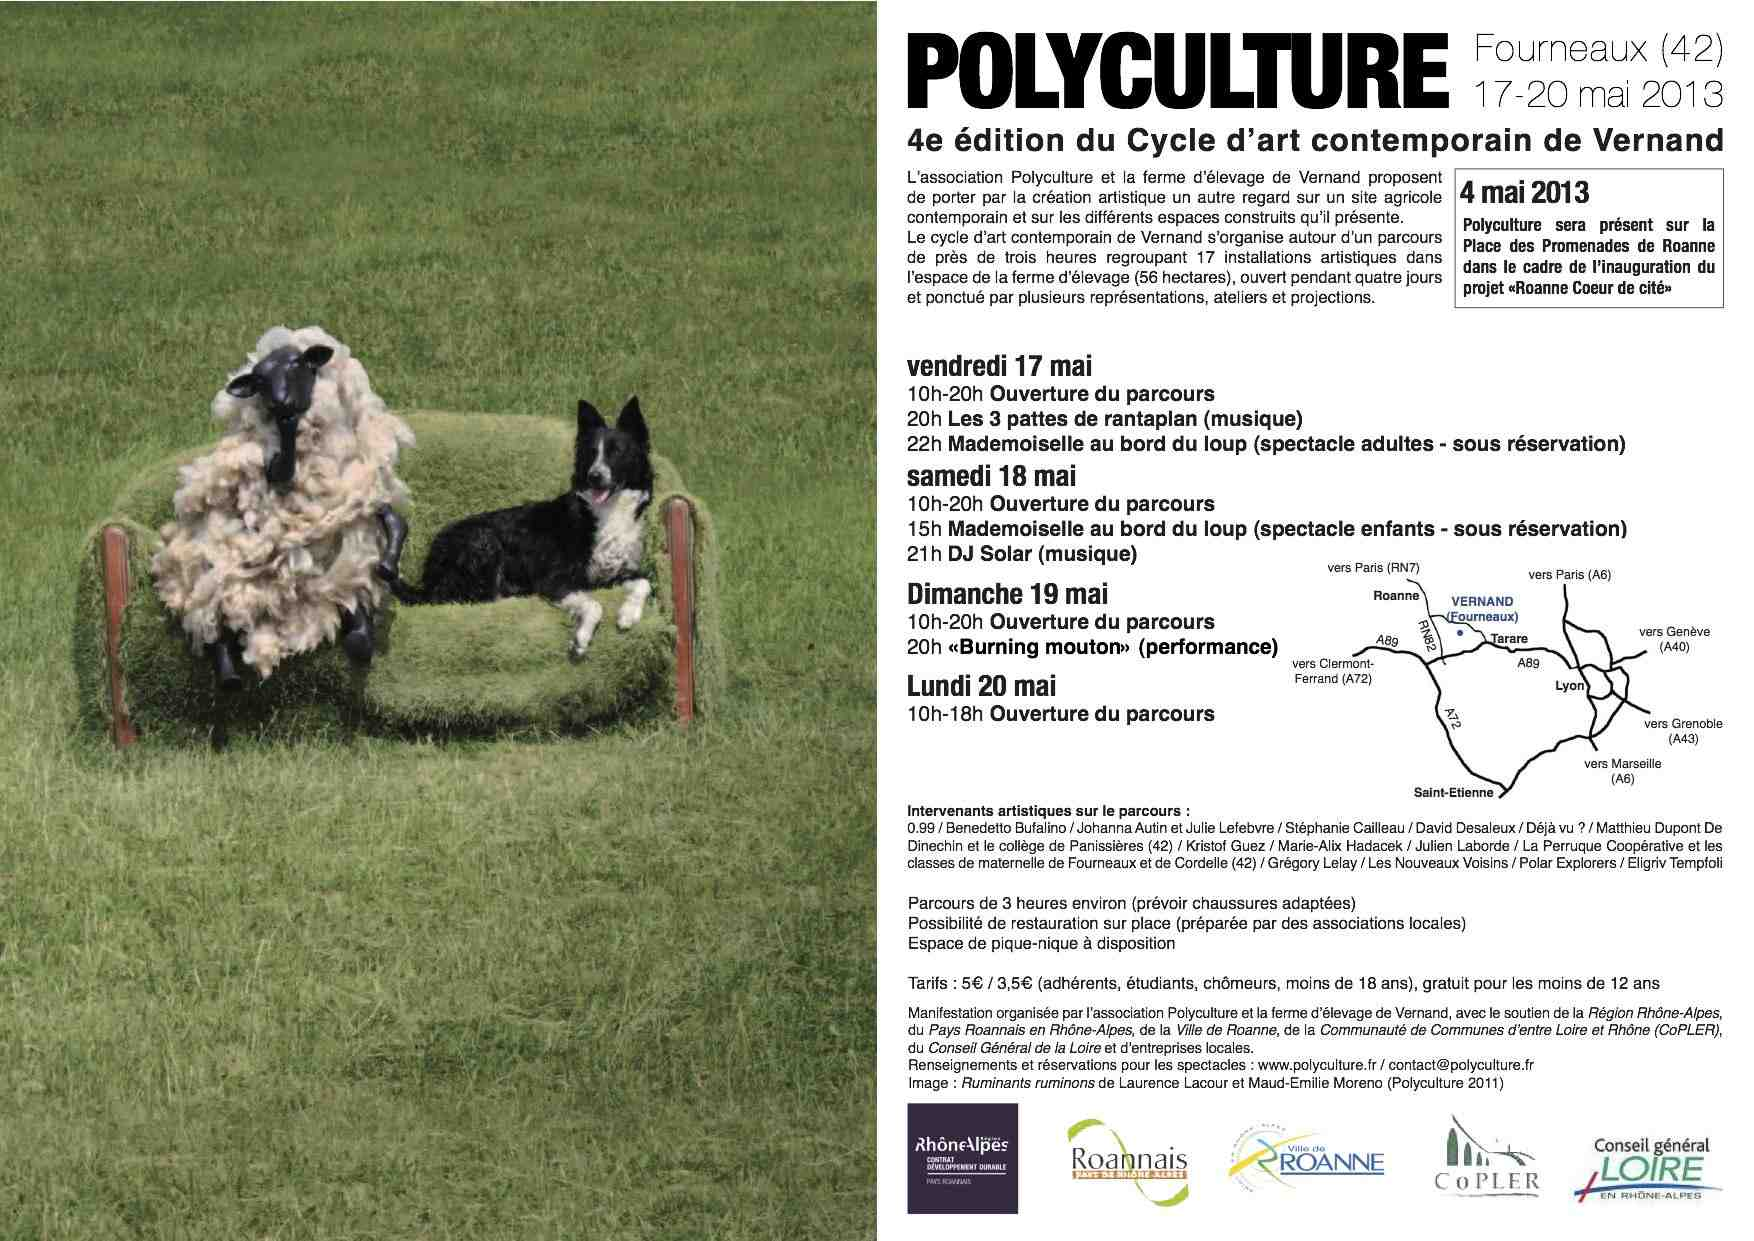 Polyculture2013Flyer1